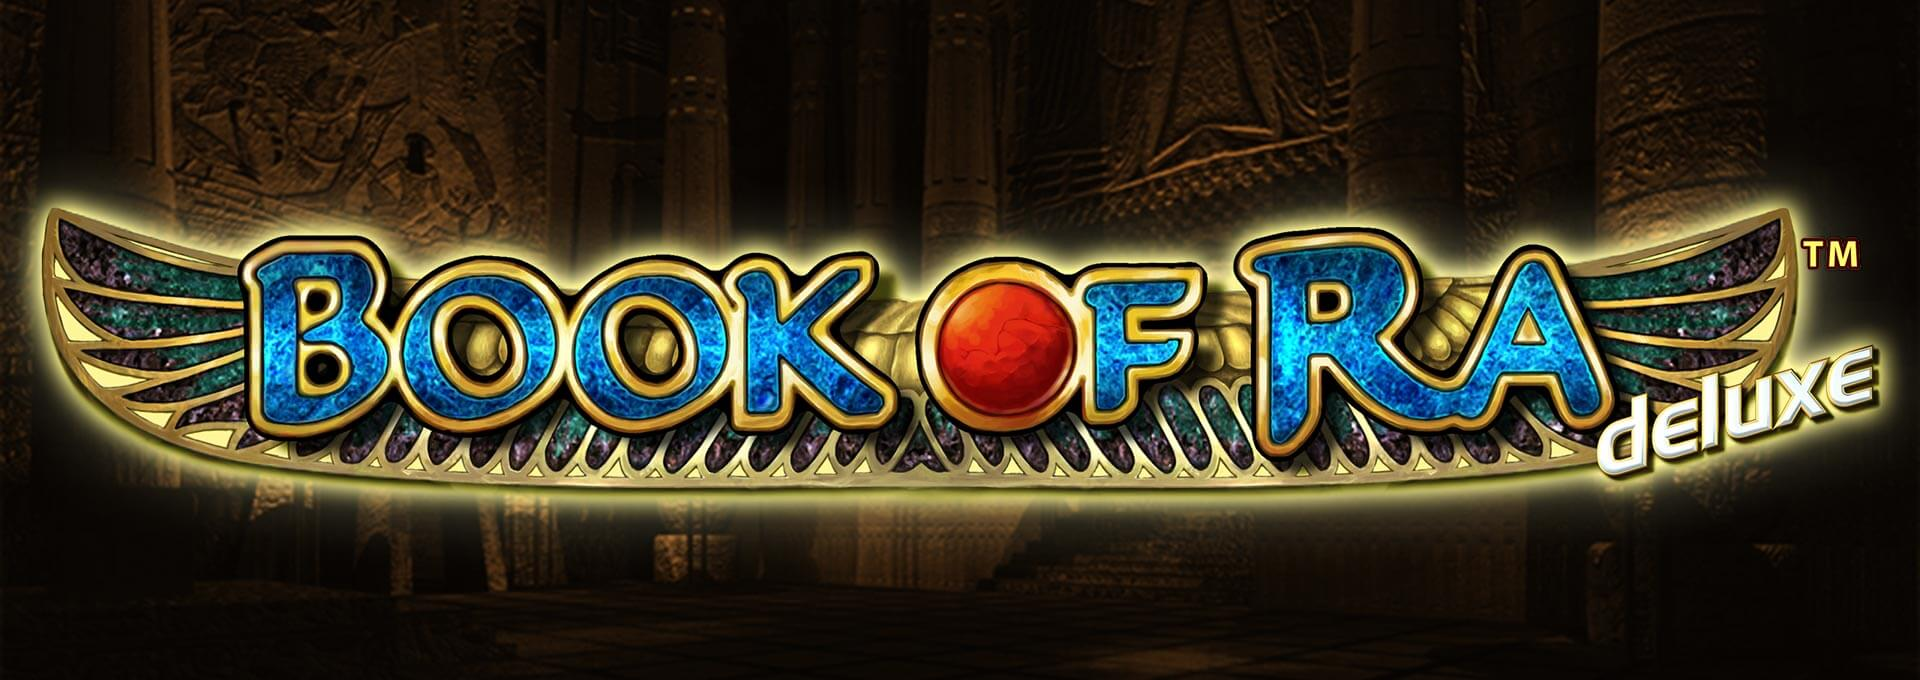 online casino gambling site book of ra free spielen